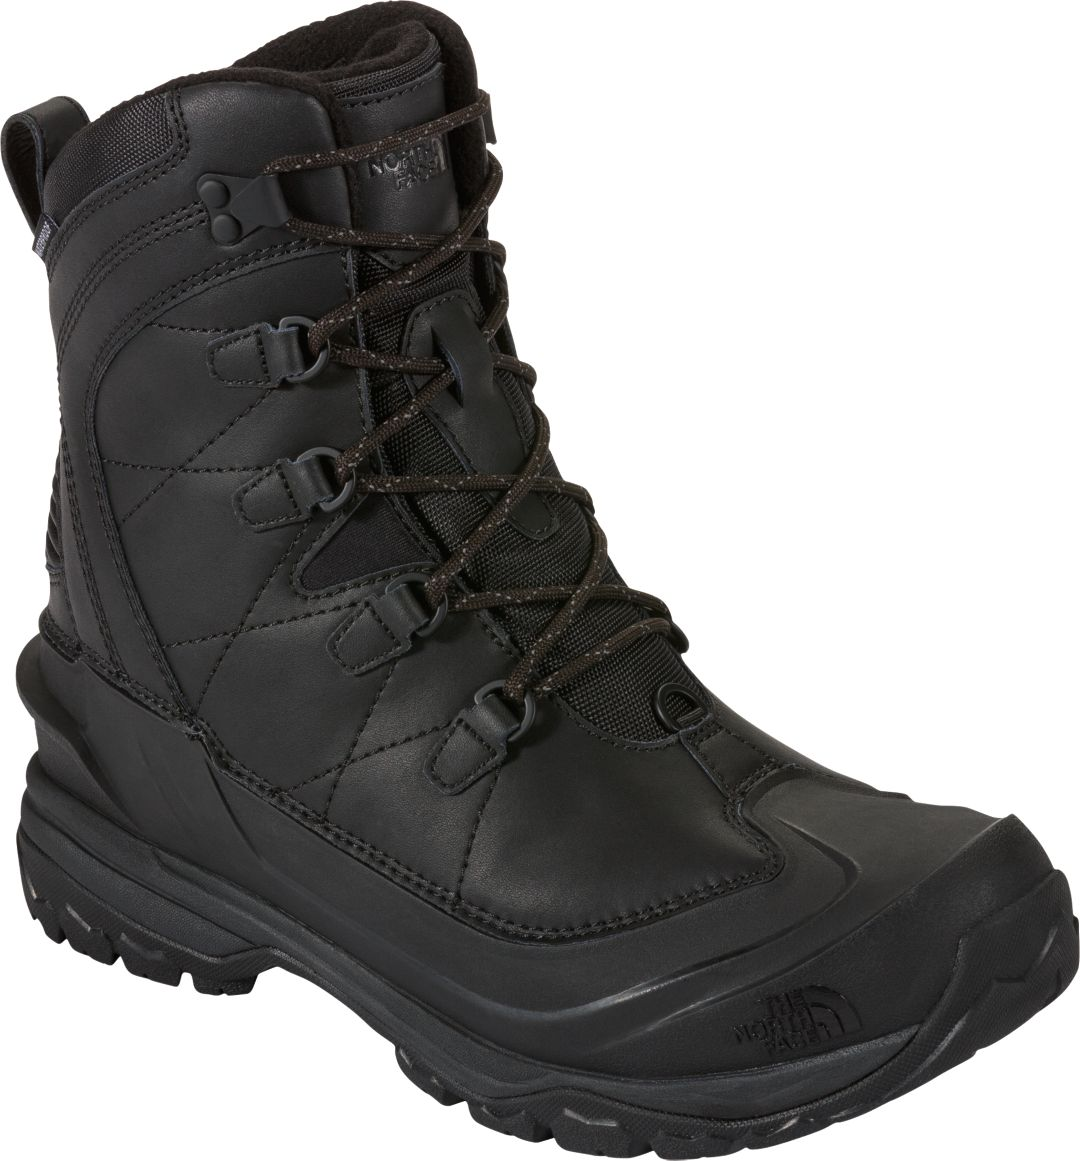 15afda49b7d The North Face Men's Chilkat Evo 200g Waterproof Winter Boots - Past ...